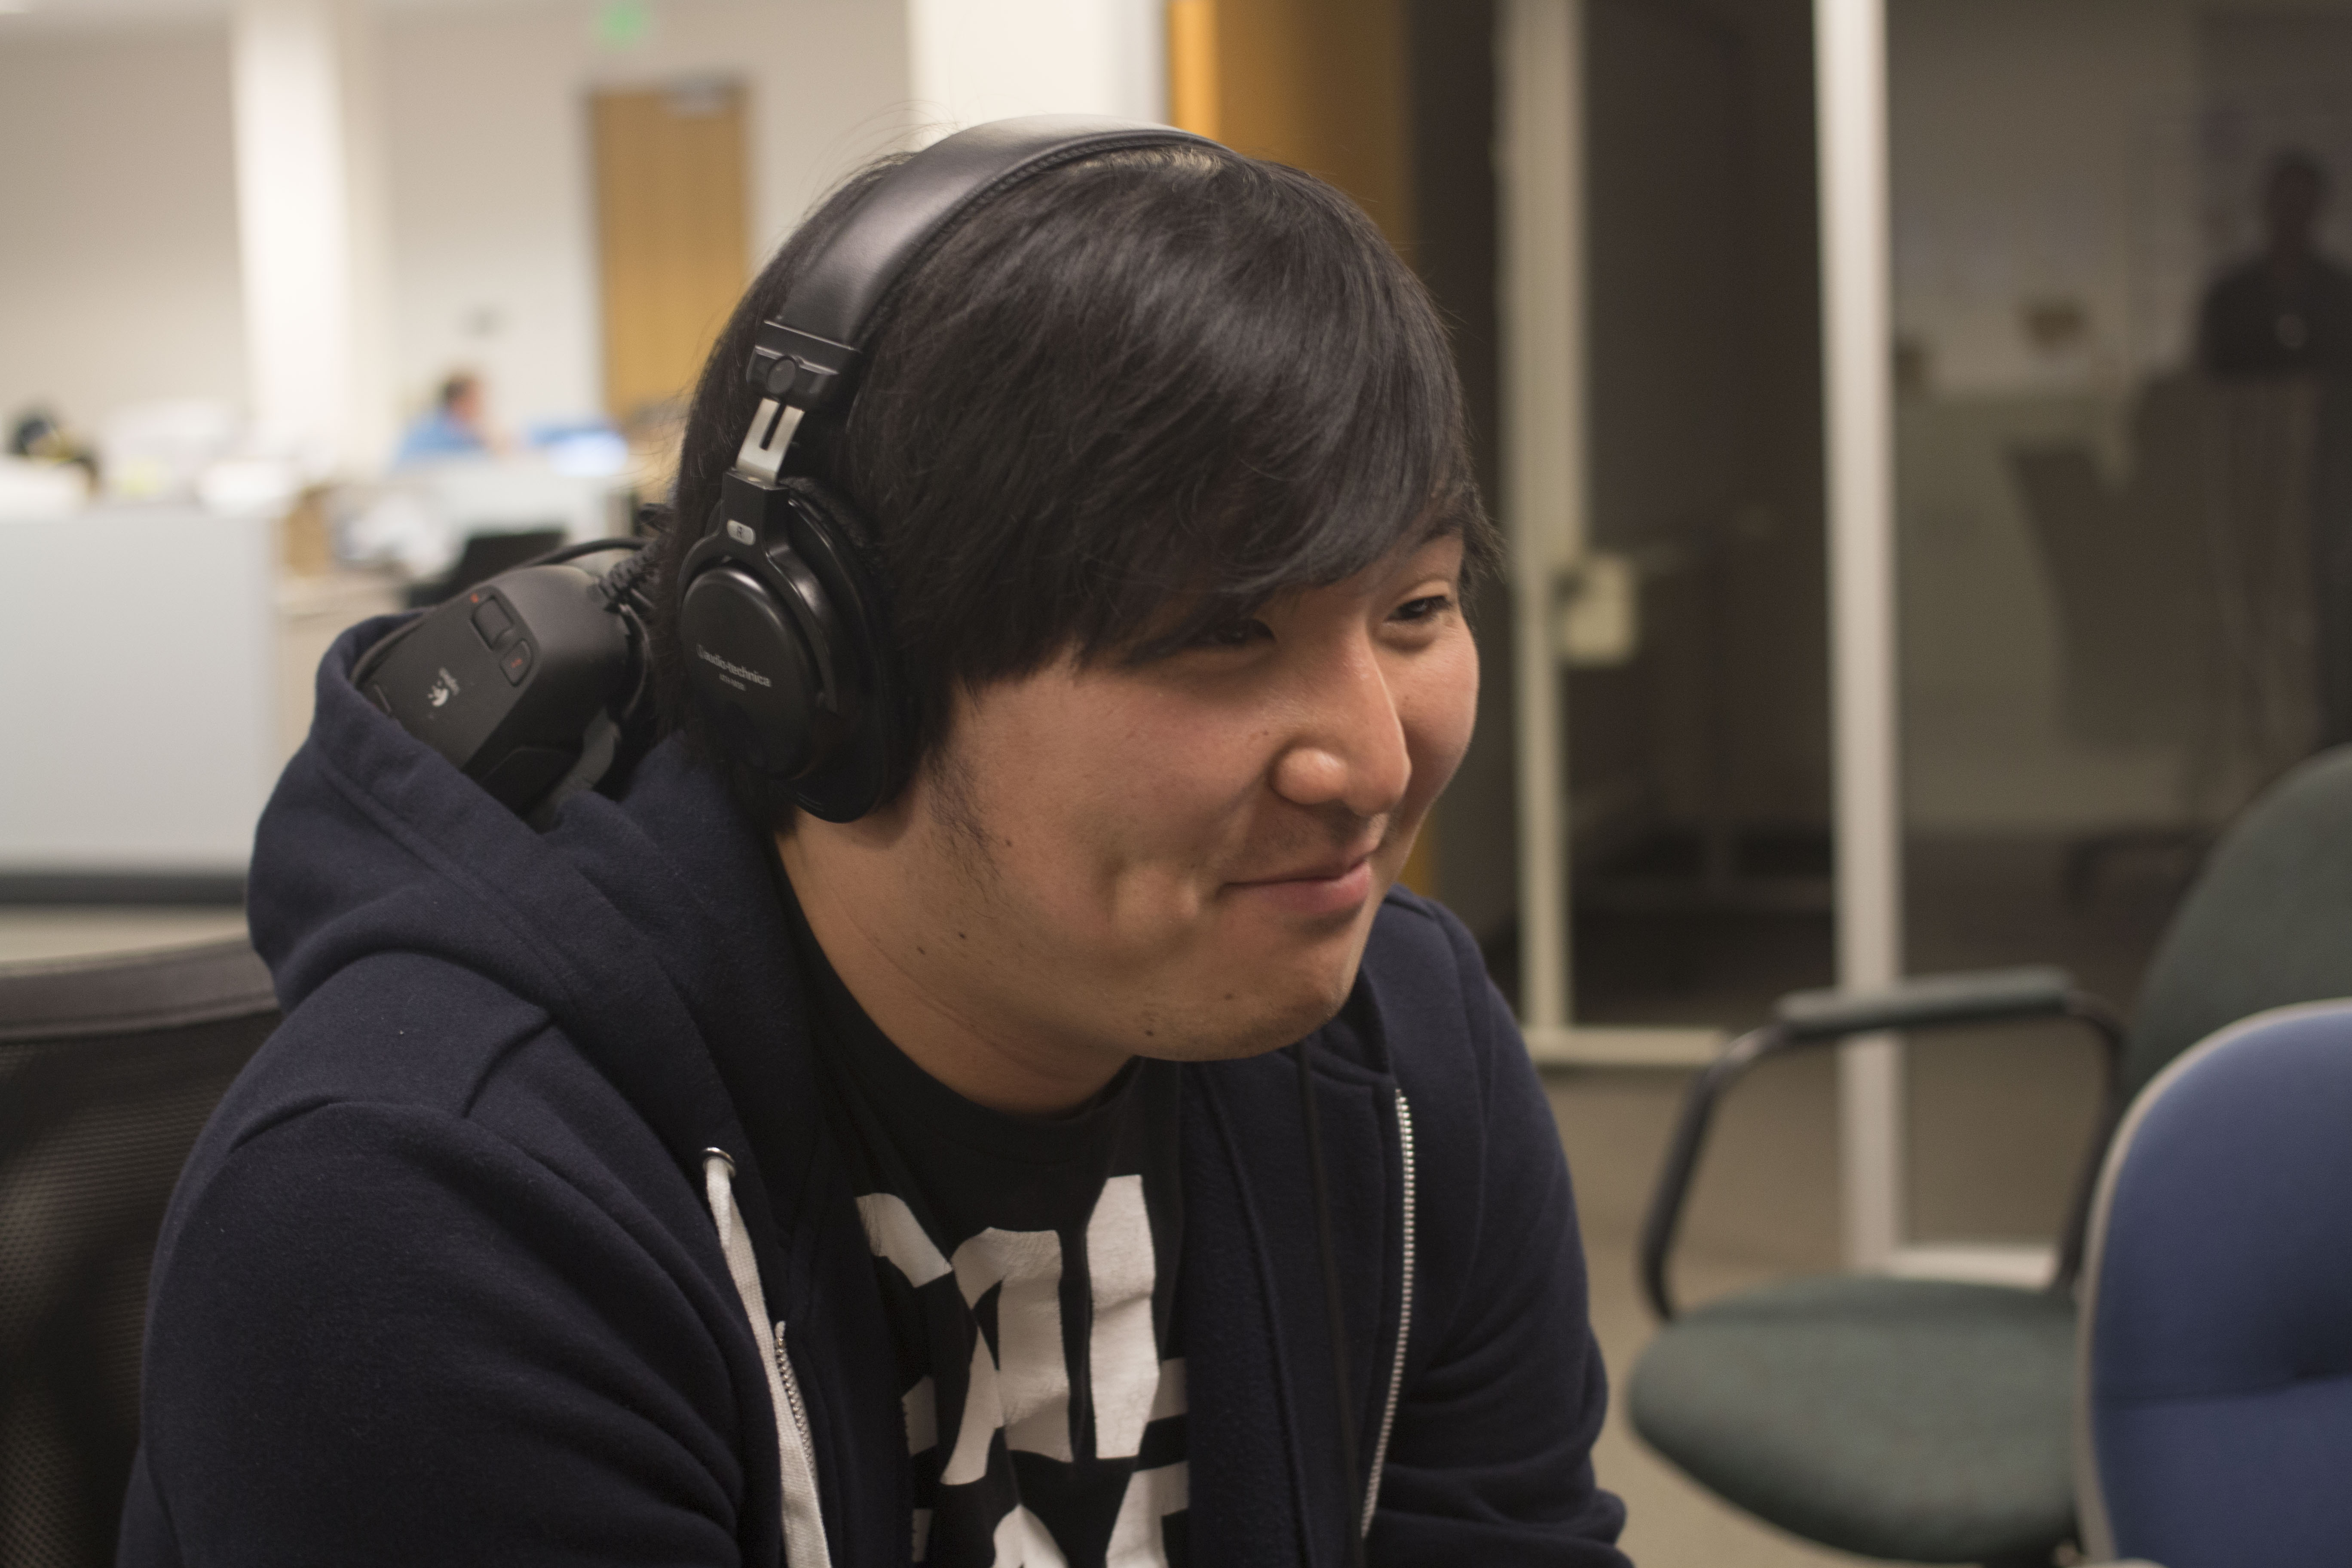 A Chat w/ ATLUS Staff: Music to Game to | Atlus USA